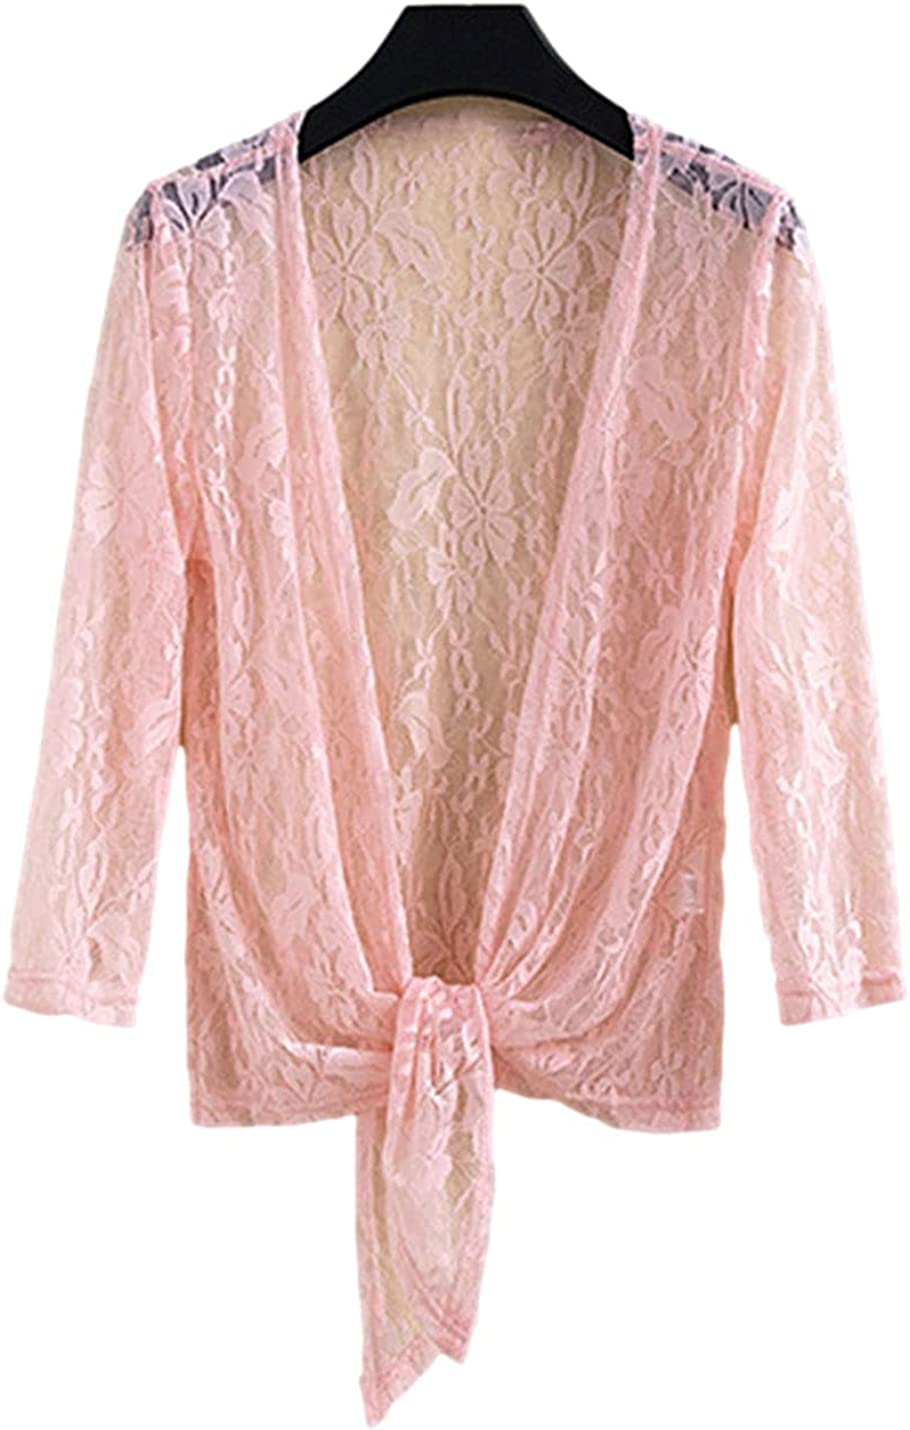 AMEBELLE Women's Lightweight 3/4 Sleeve Front Tie Shrug Tops Lace Open Front Cardigan